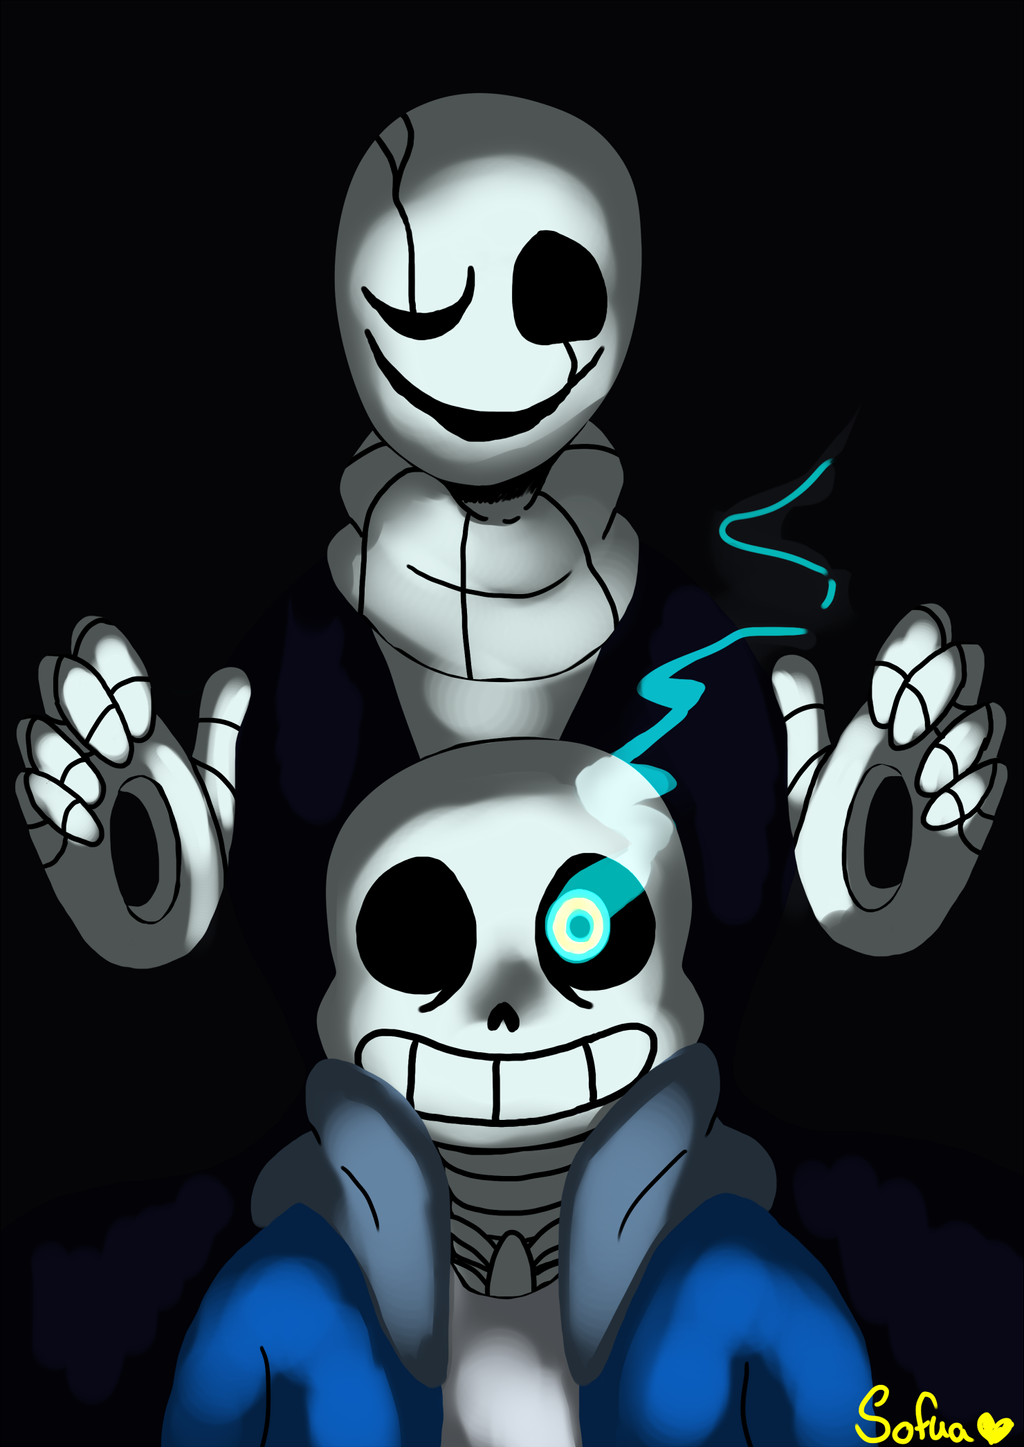 Fanart Sans And Gaster By Sofua On Deviantart